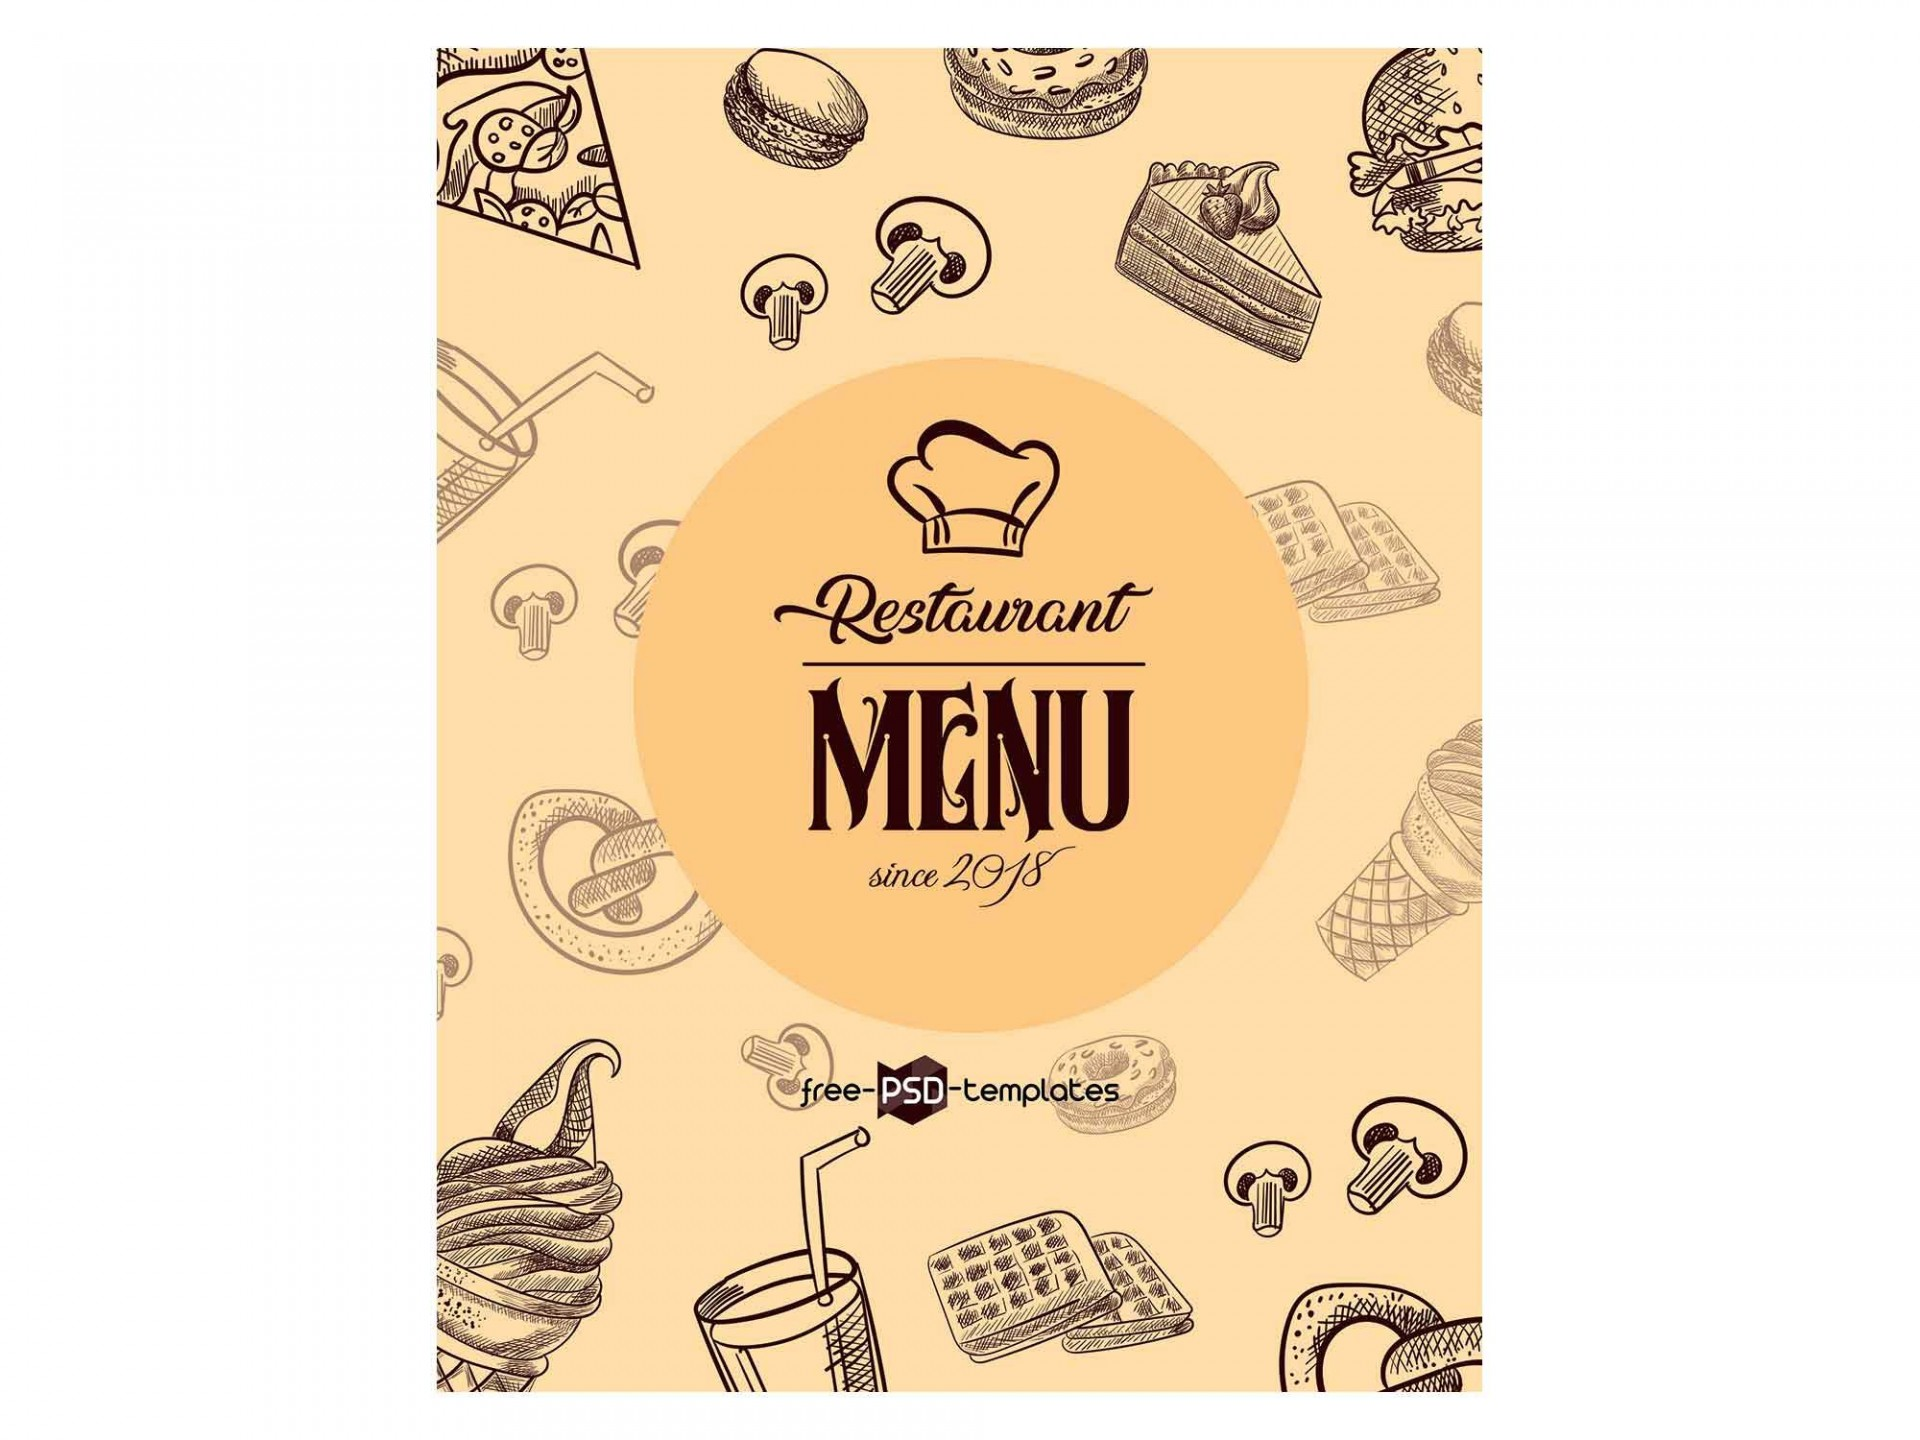 007 Simple Menu Template Free Download For Restaurant Highest Clarity  Word Psd1920